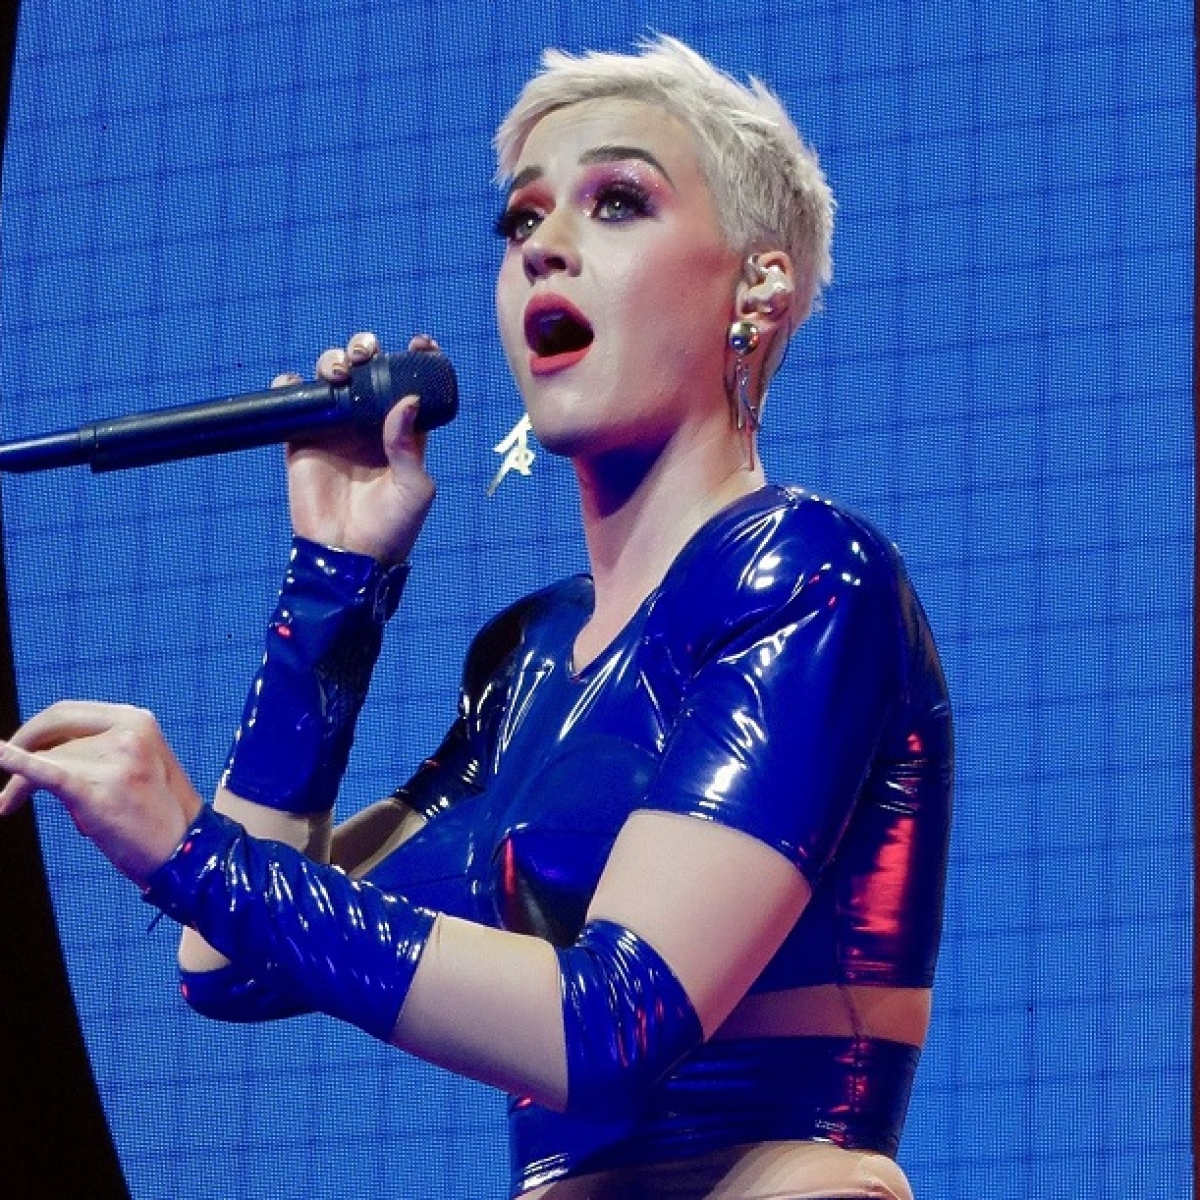 Where's the party tonight: Katy Perry, John Legend gear up for virtual house party